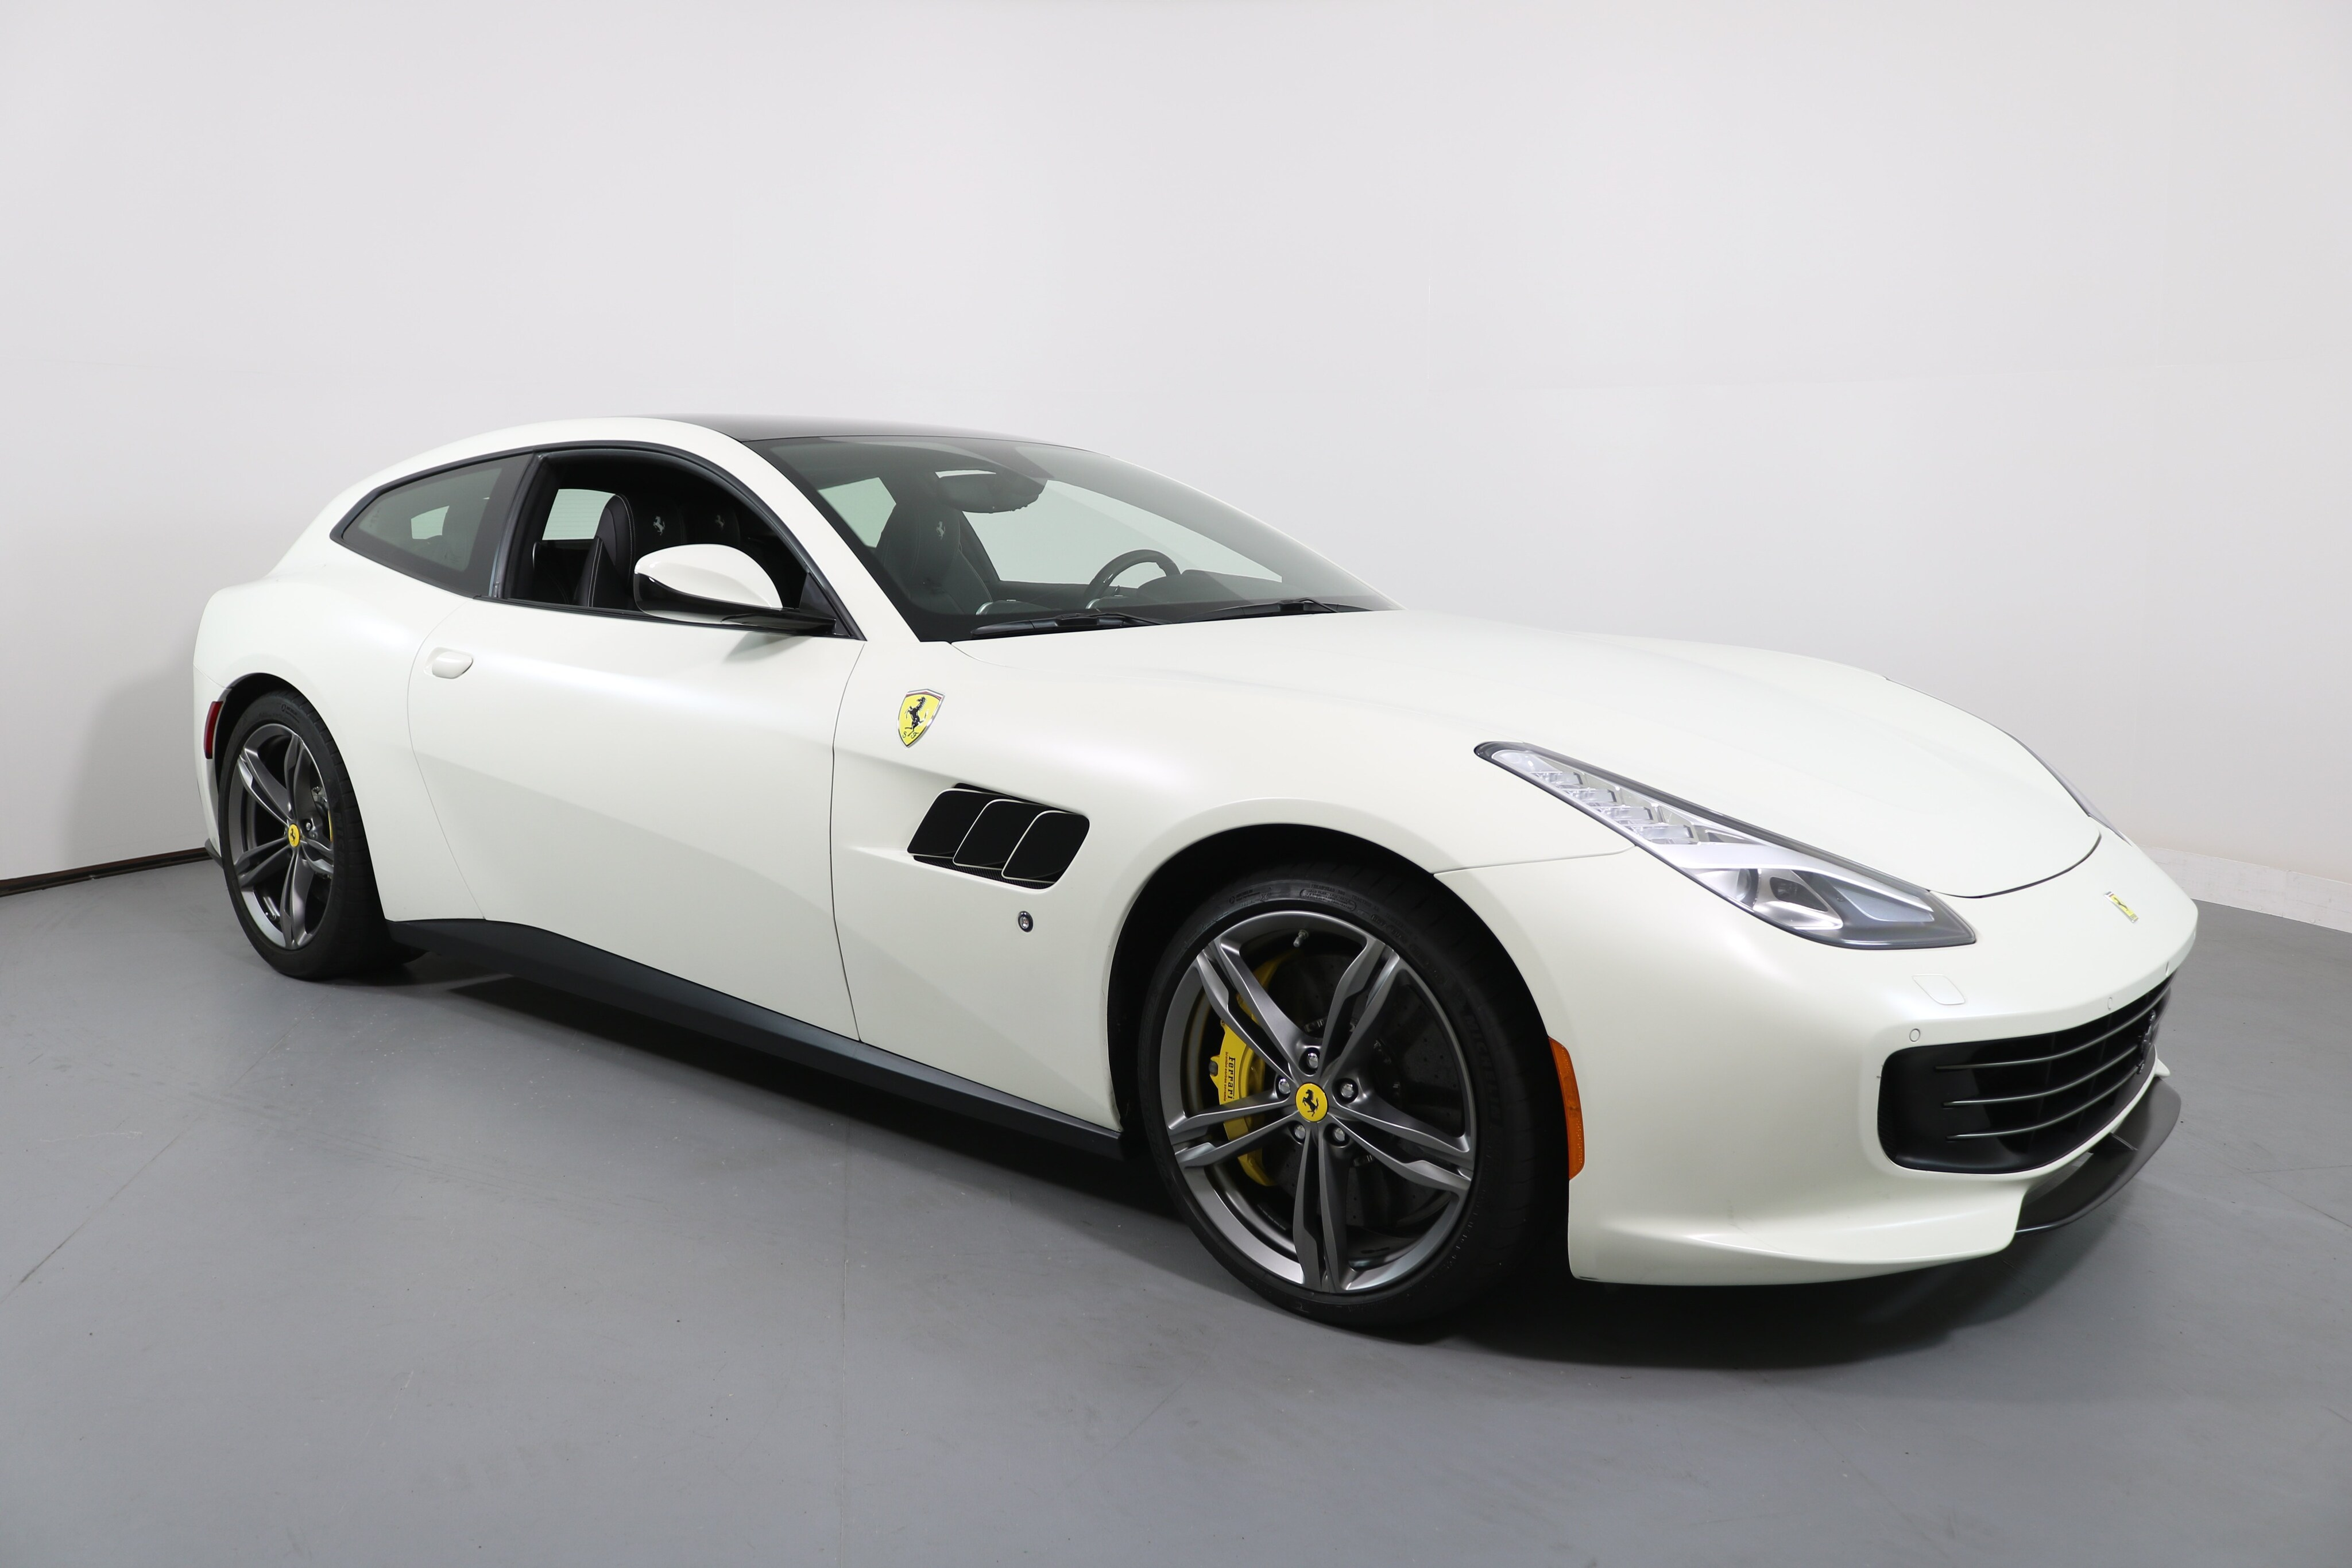 Used 2018 Ferrari Gtc4lusso San Francisco Ca Zff82wna6j0231778 Serving The Bay Area Mill Valley San Rafael Redwood City And Silicon Valley